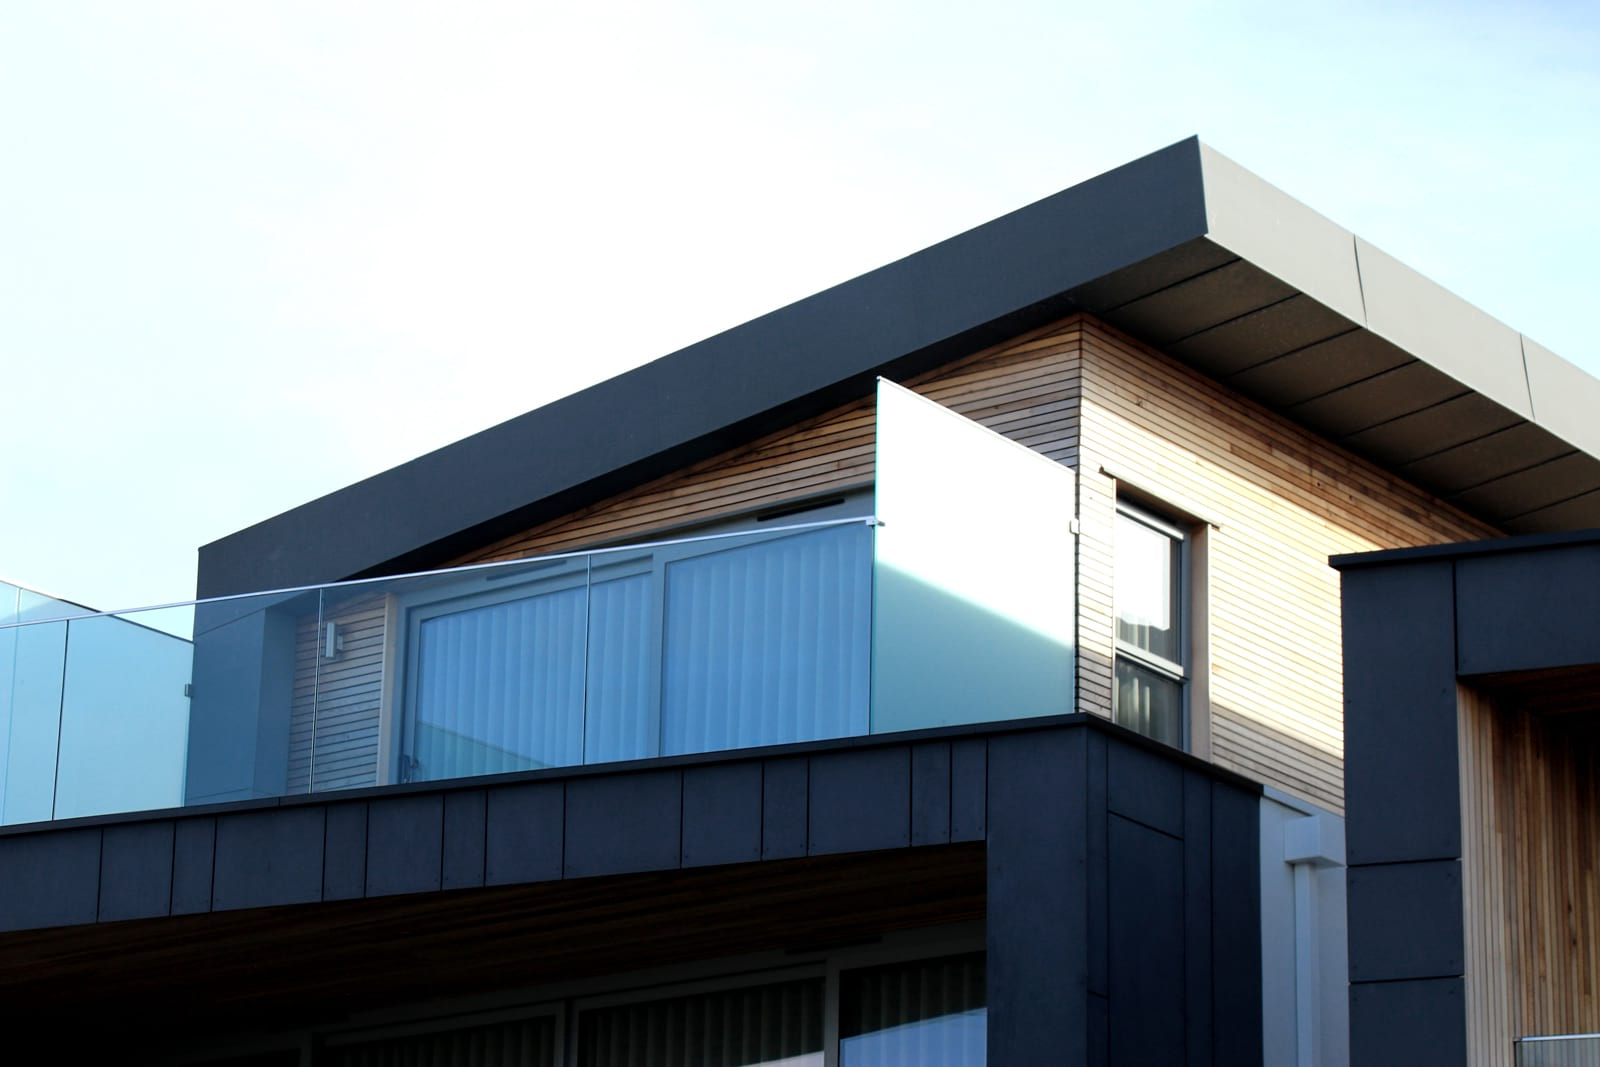 Flat roofing materials compared: Guide to felt vs GRP fibreglass flat roofs